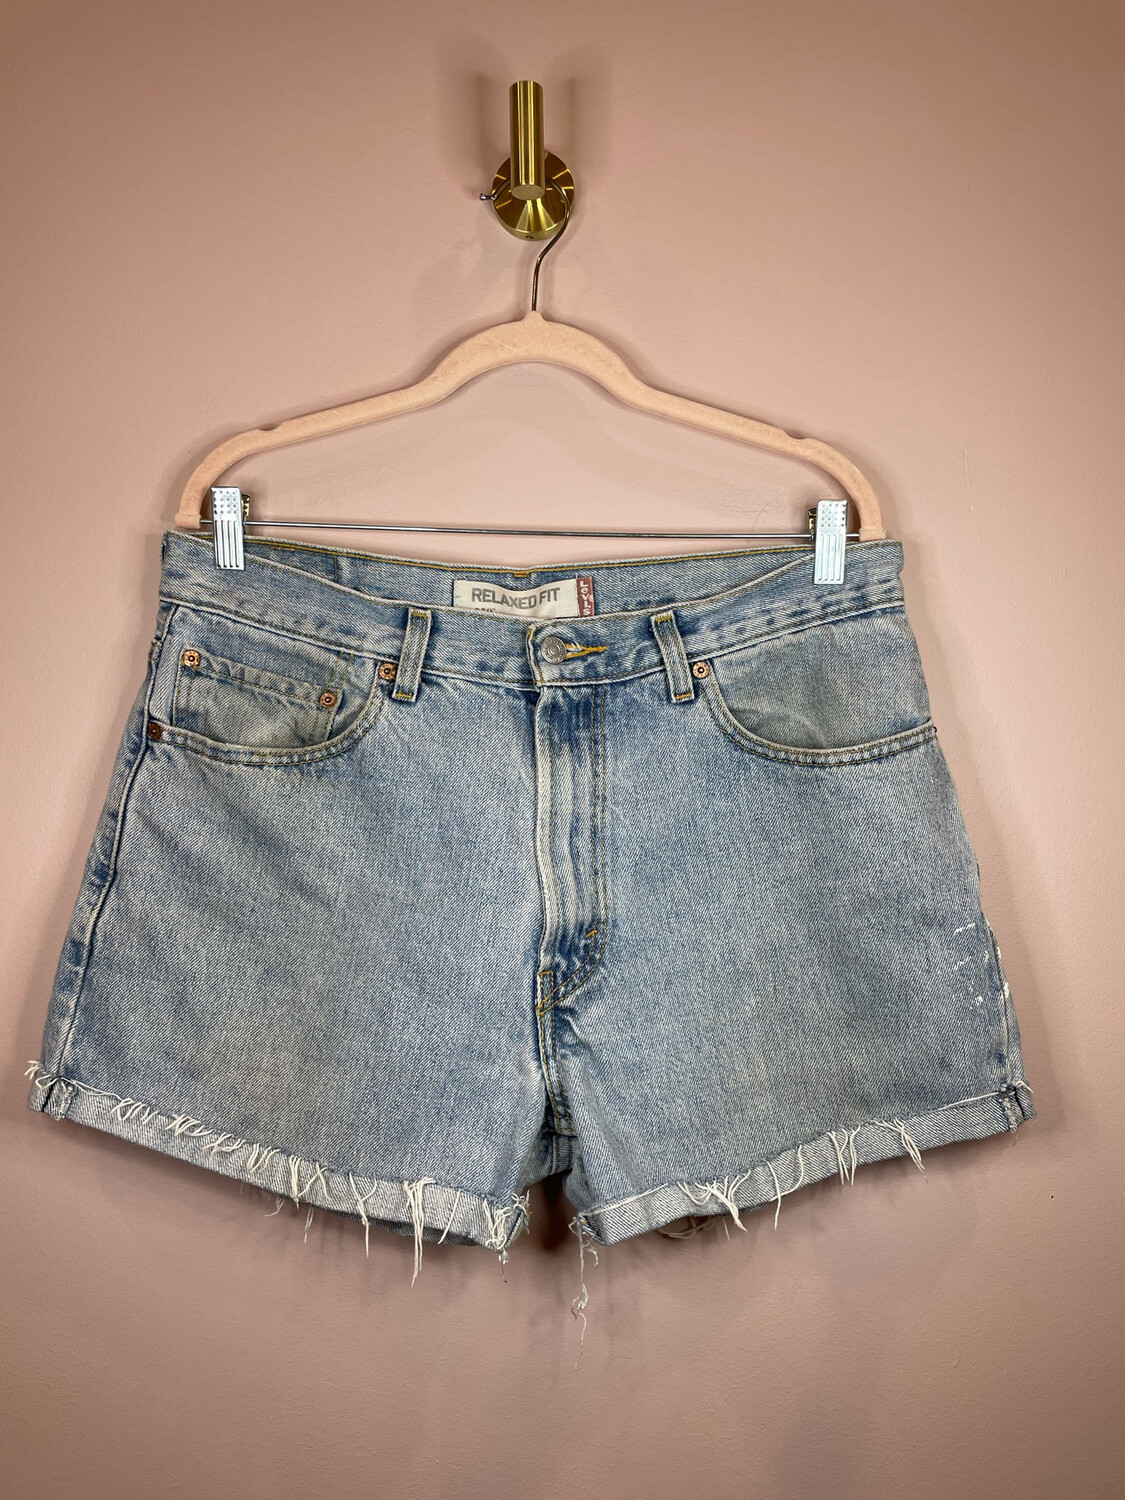 Levi's 550 Relaxed Fit Distressed Cuffed Denim Shorts - Size 34